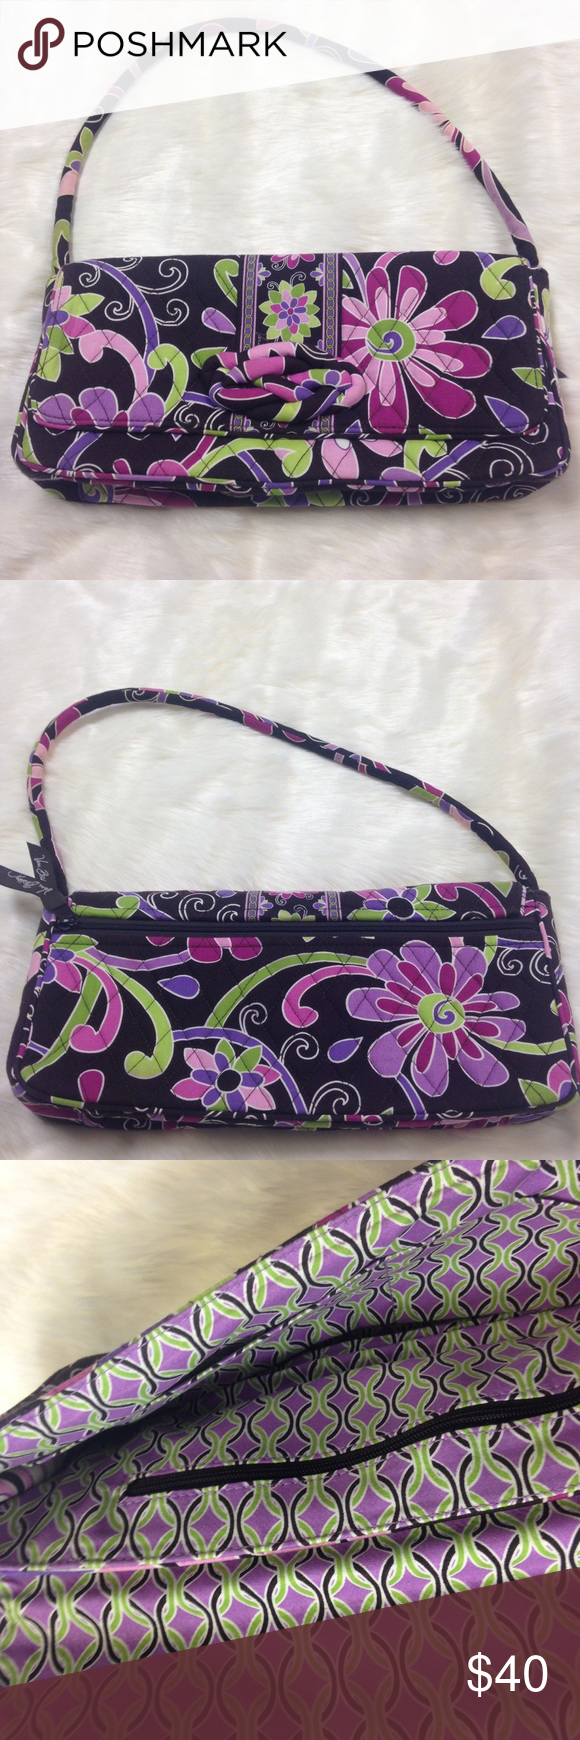 Vera Bradley Purple Punch Knot Just a Clutch Bag No flaws. Length 12.5 inches. Height 6.5 inches. 2 inside slip pockets. 1 inside zipper pocket. 1 outside zipper pocket. Strap drop 9.5 inches(detachable strap). Vera Bradley Bags Shoulder Bags